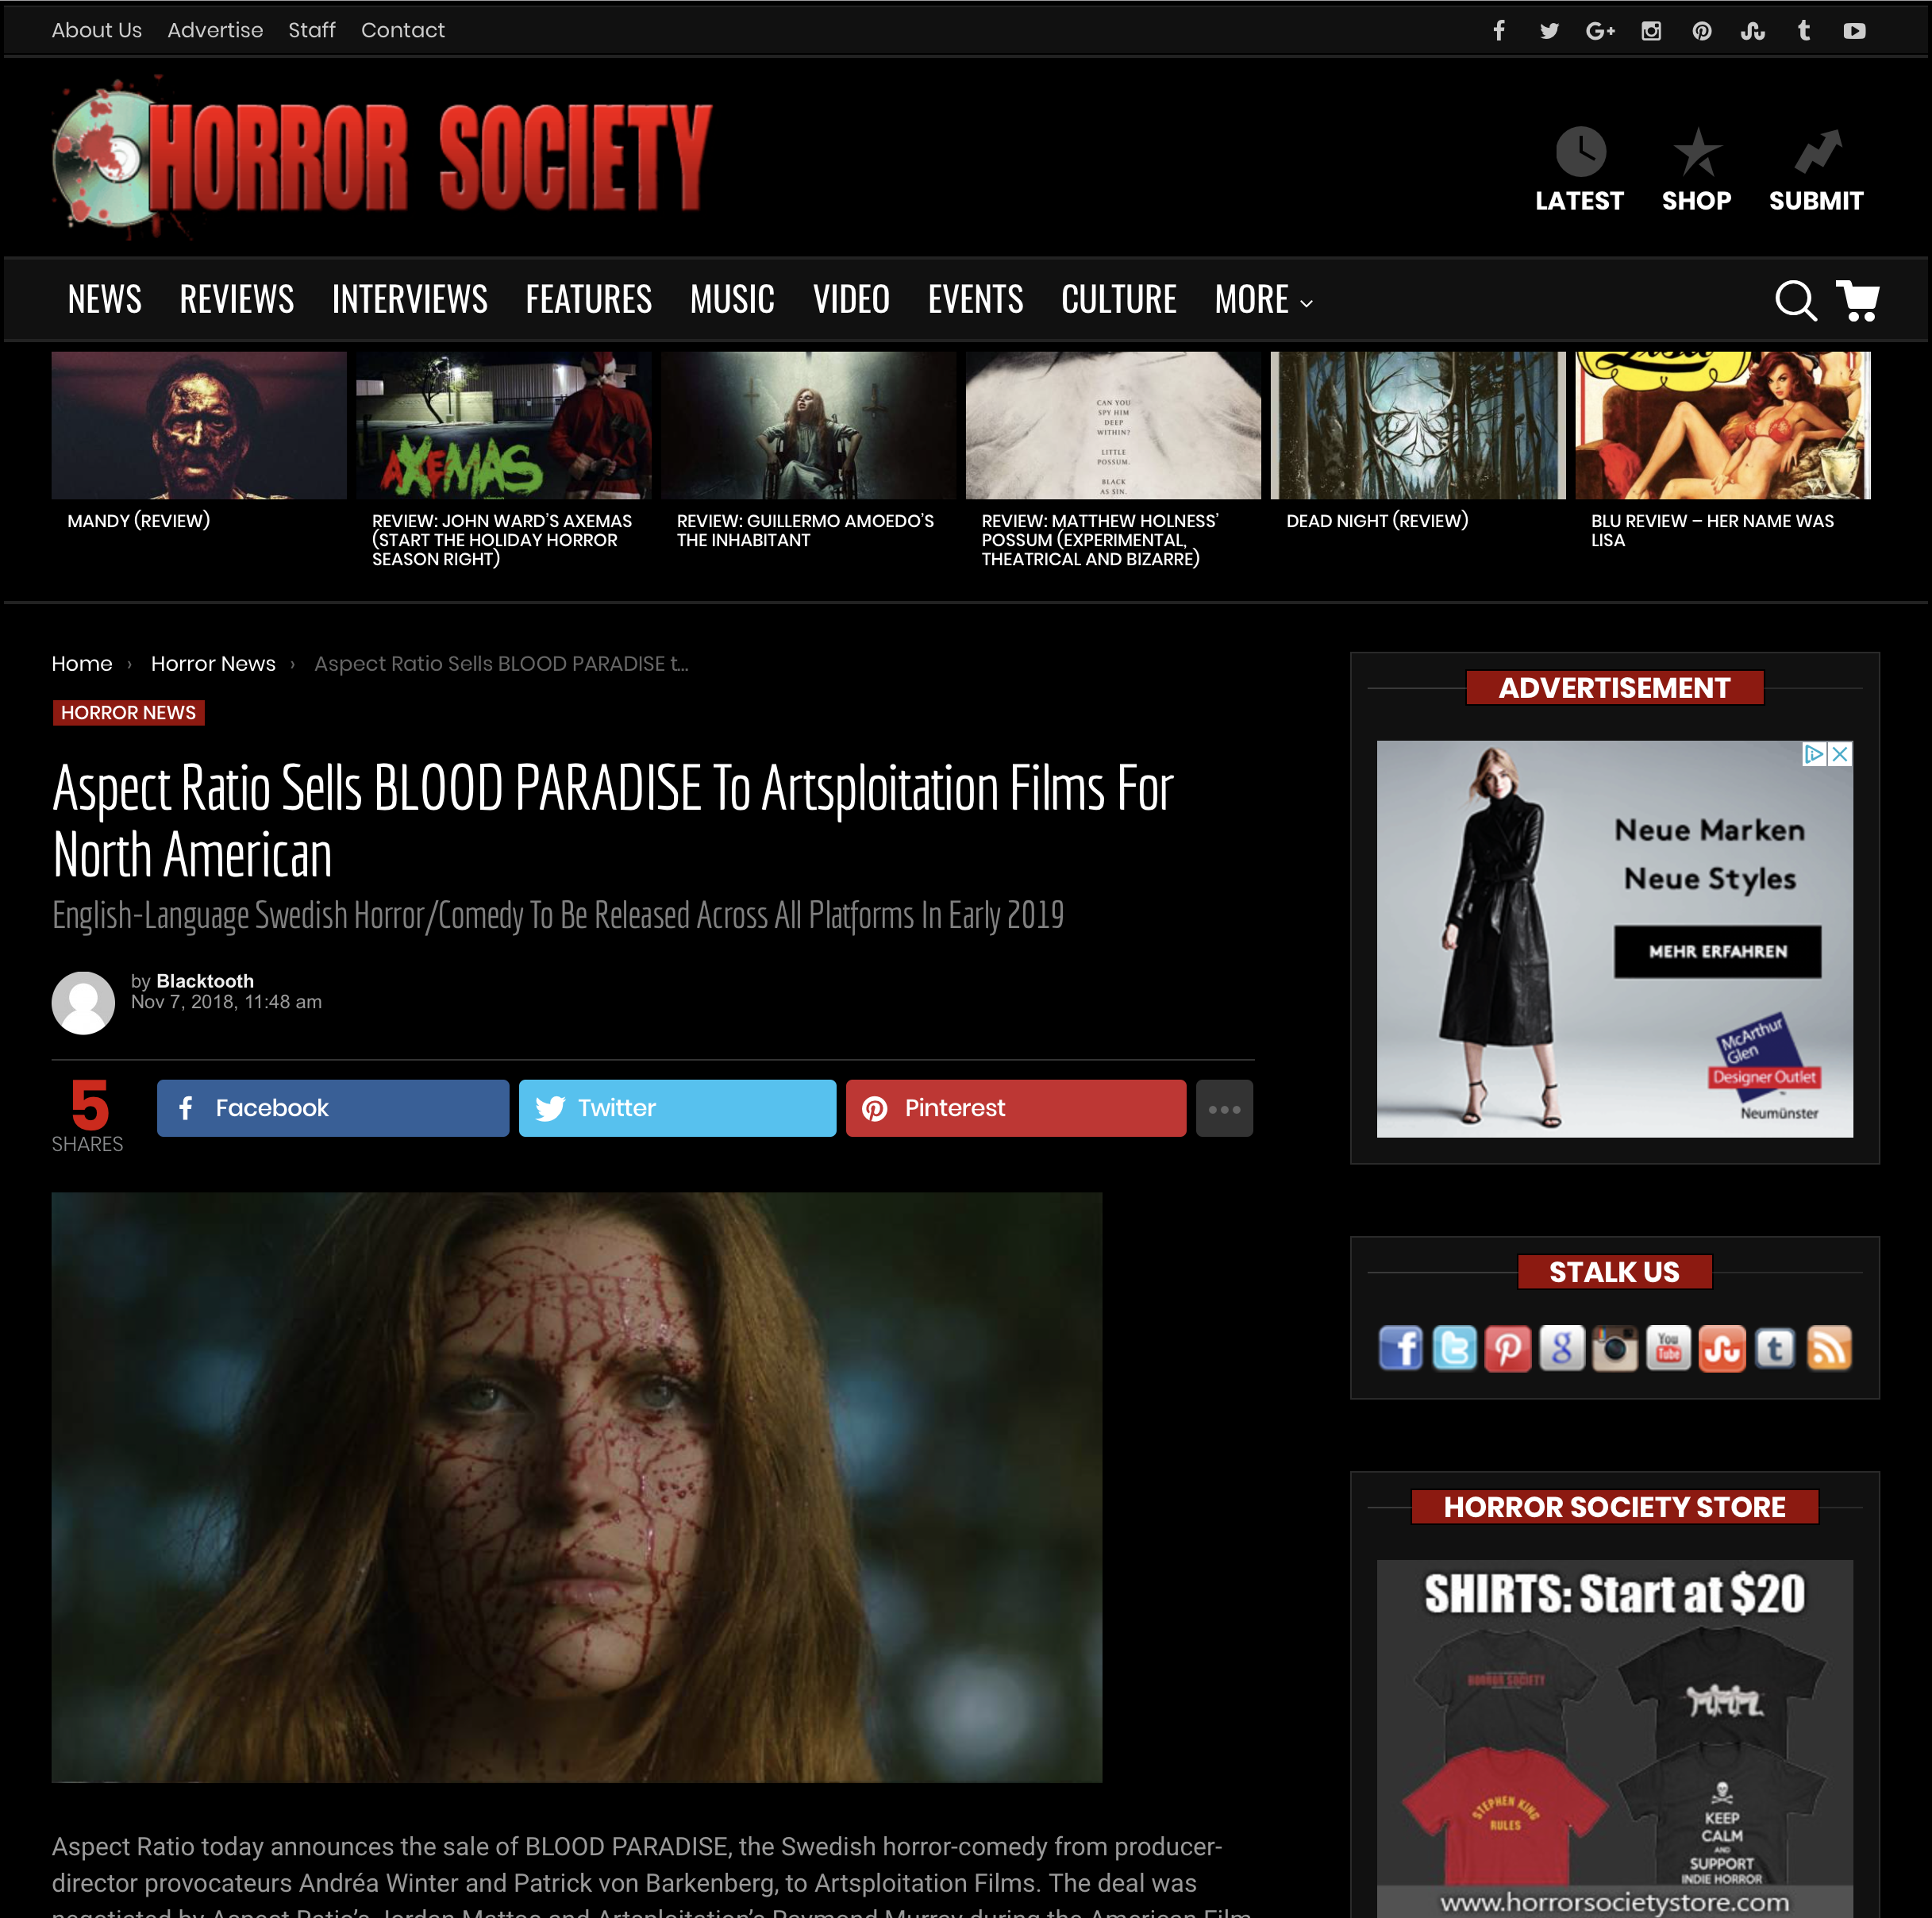 HORROR SOCIETY - Aspect Ratio today announces the sale of BLOOD PARADISE, the Swedish horror-comedy from producer-director provocateurs Andréa Winter and Patrick von Barkenberg, to Artsploitation Films. The deal was negotiated by Aspect Ratio's Jordan Mattos and Artsploitation's Raymond Murray during the American Film Market.